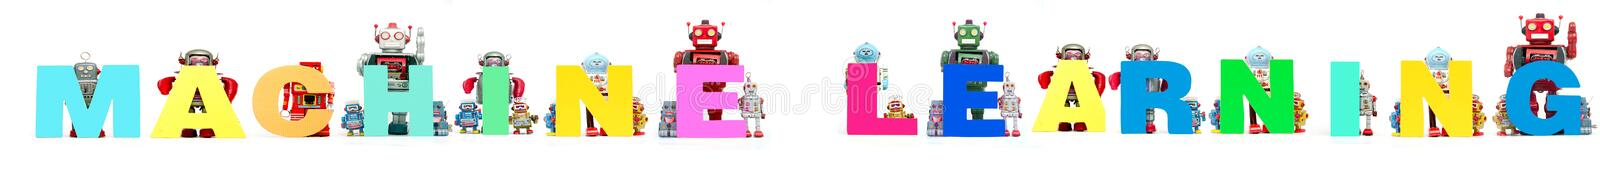 Retro tin robot toys hold up the word MACHINE LEARNING isolated stock photo